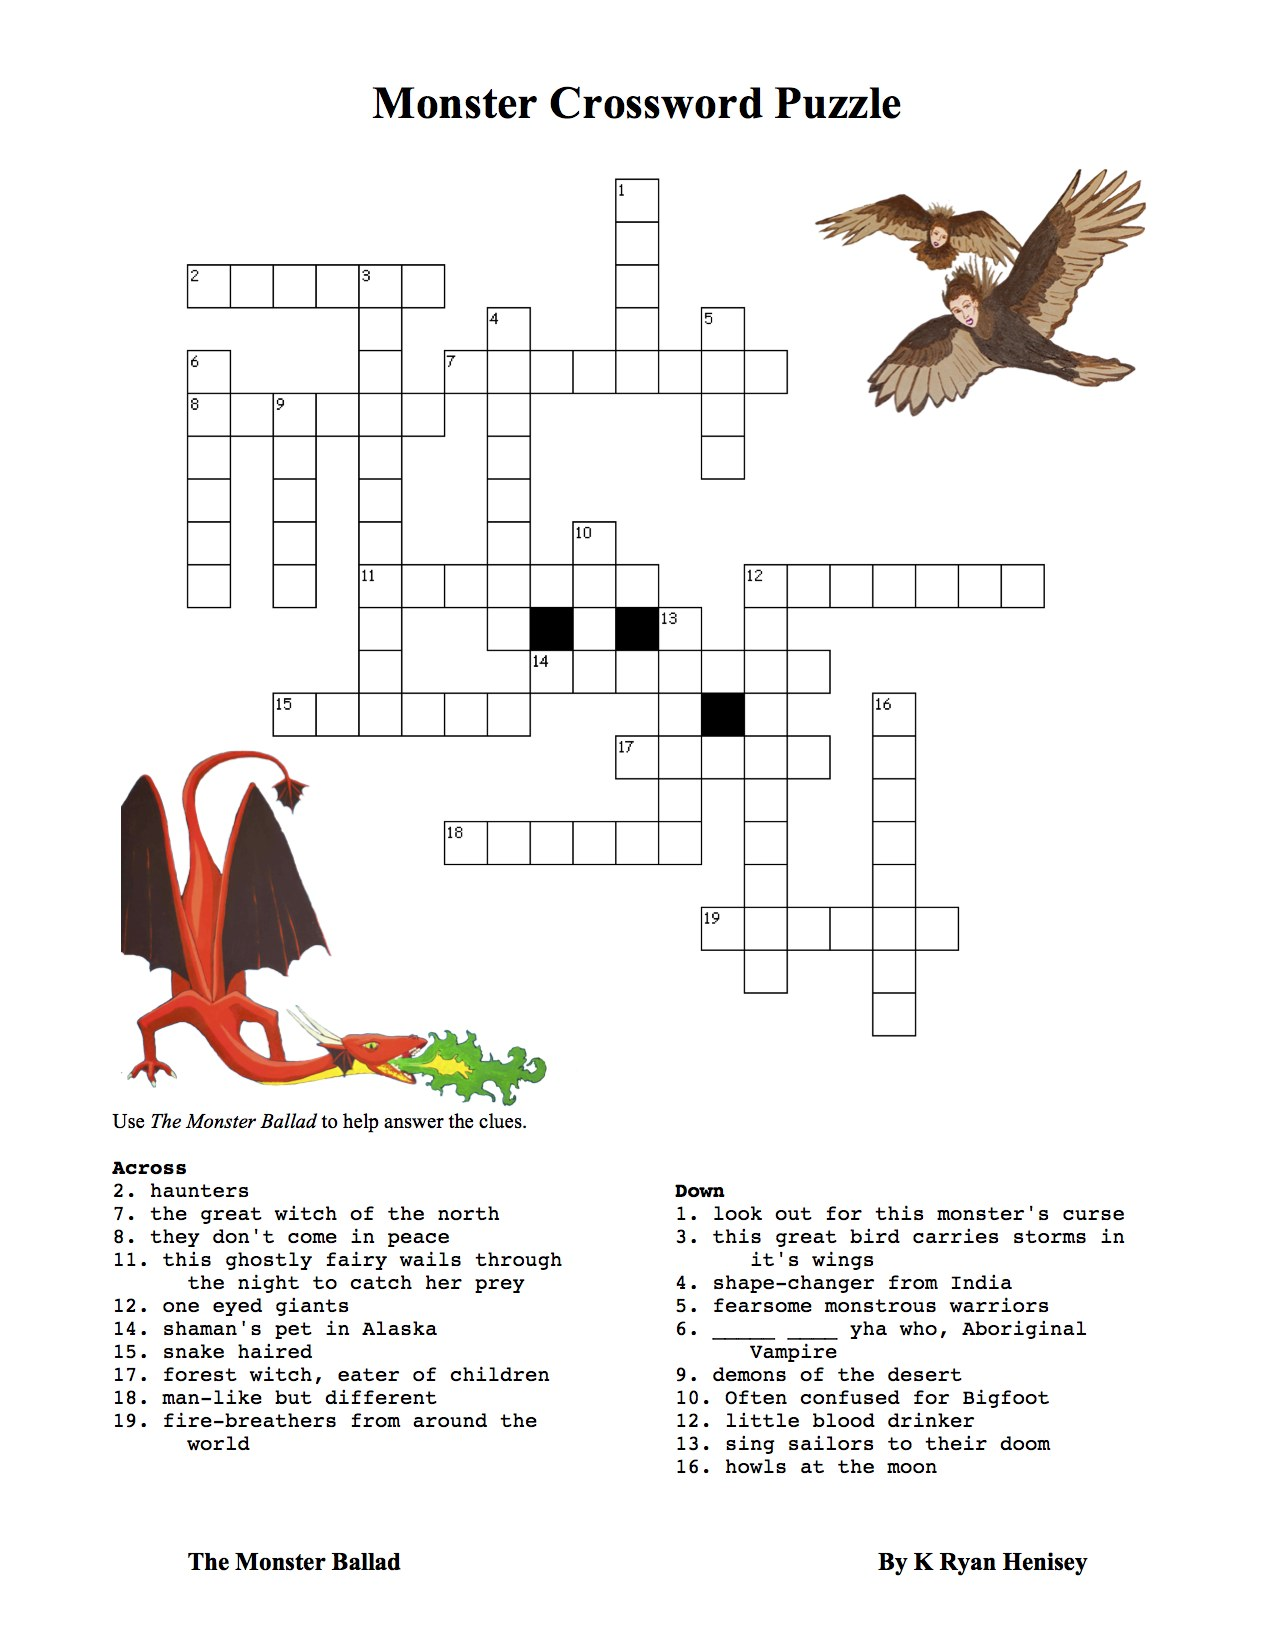 Critters crossword